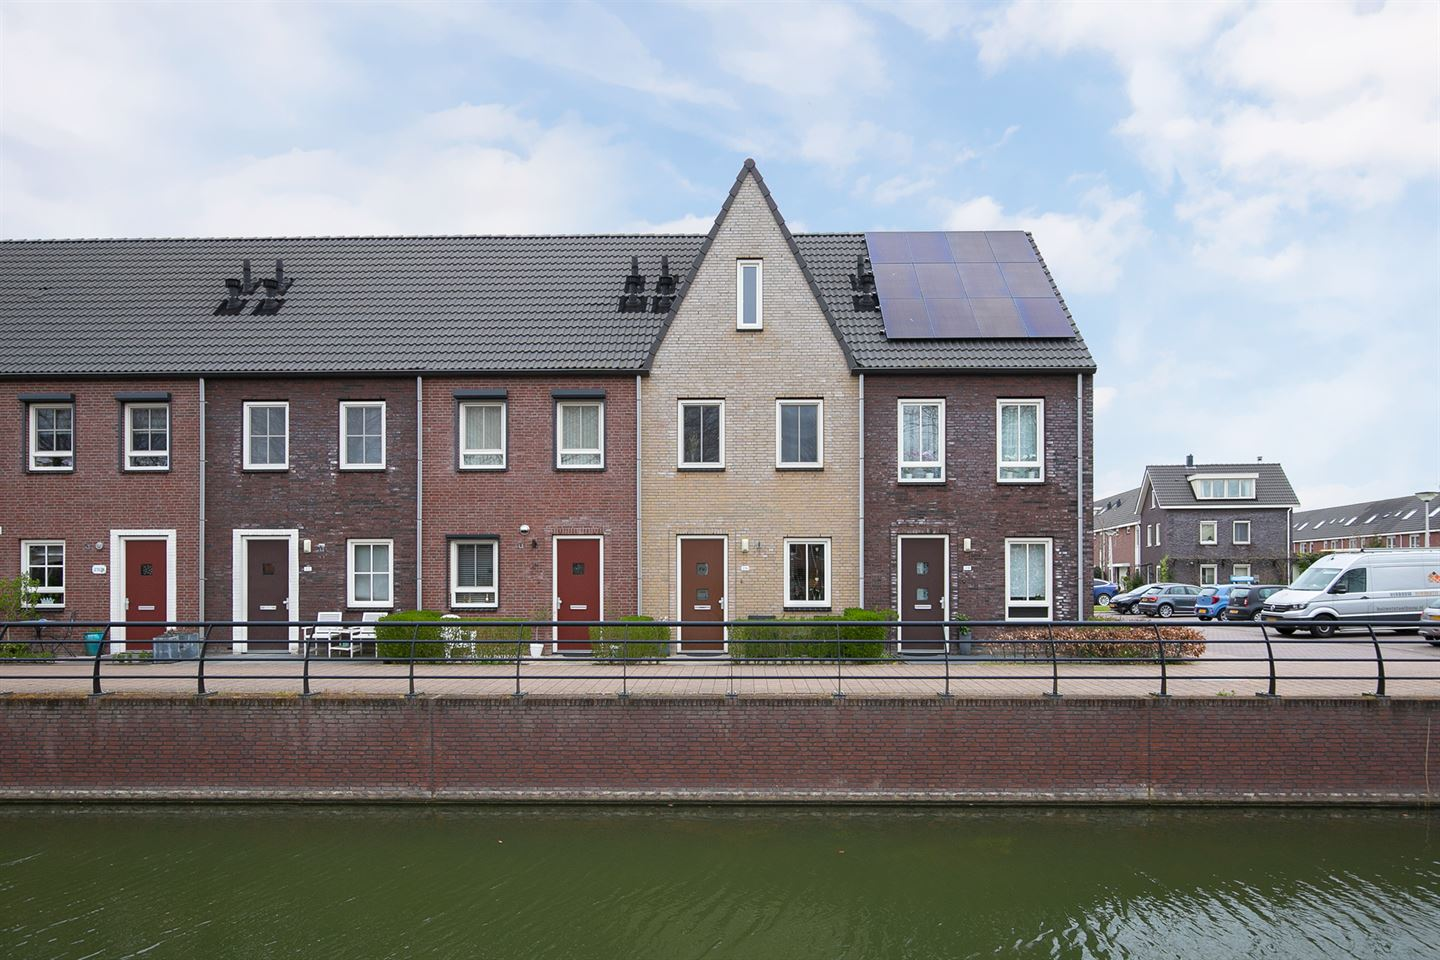 View photo 1 of Steur 216